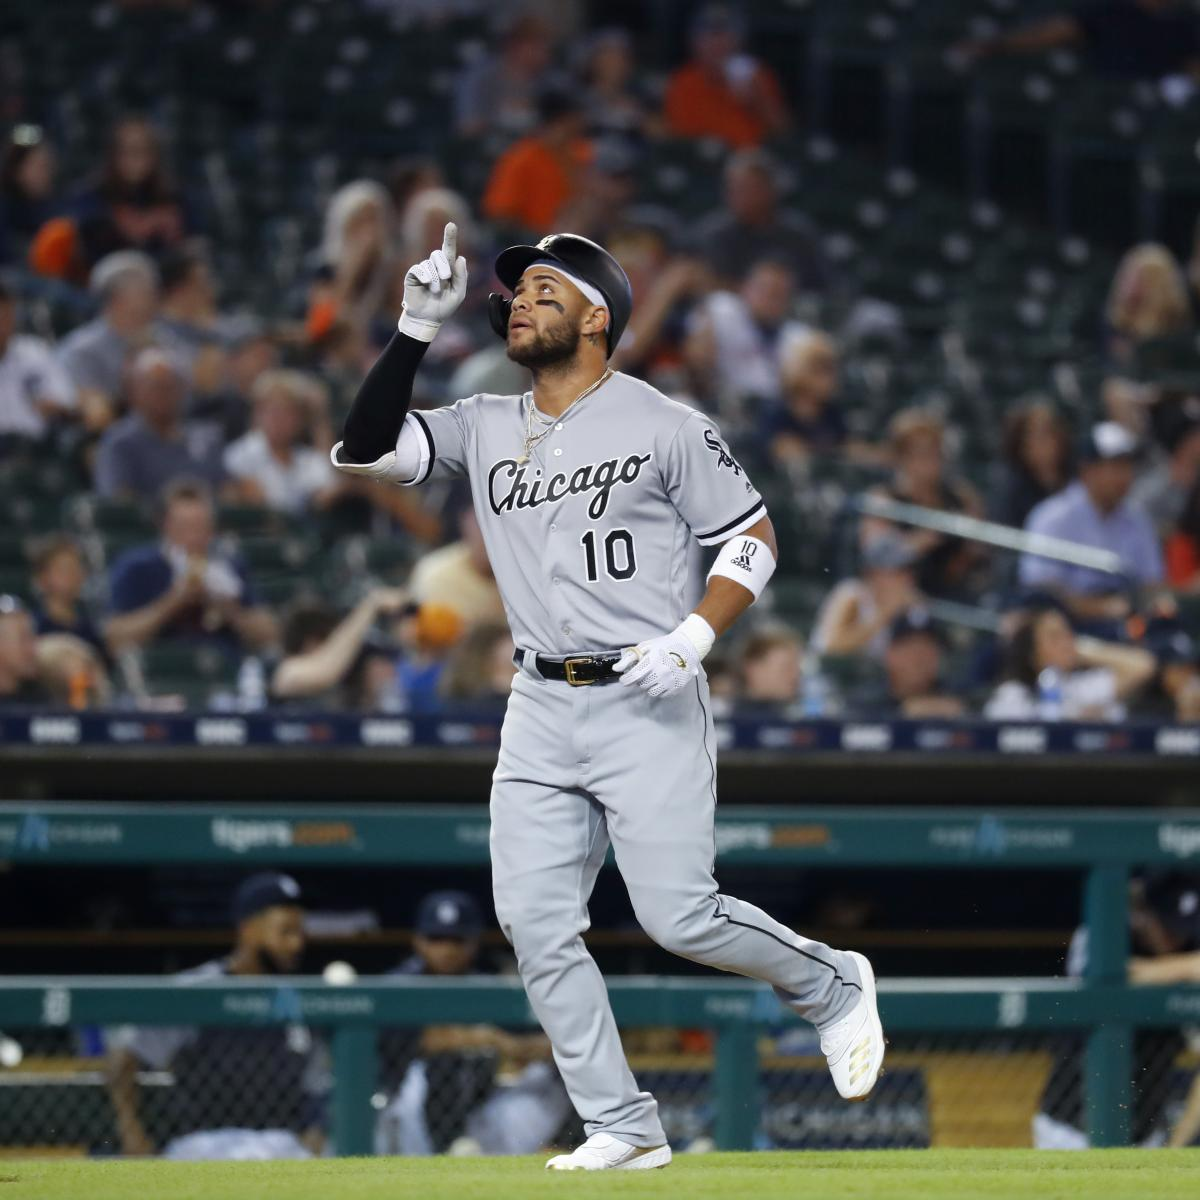 White Sox's Yoan Moncada to Use His 'Desastre Personal' Song for Walk-Up Music thumbnail